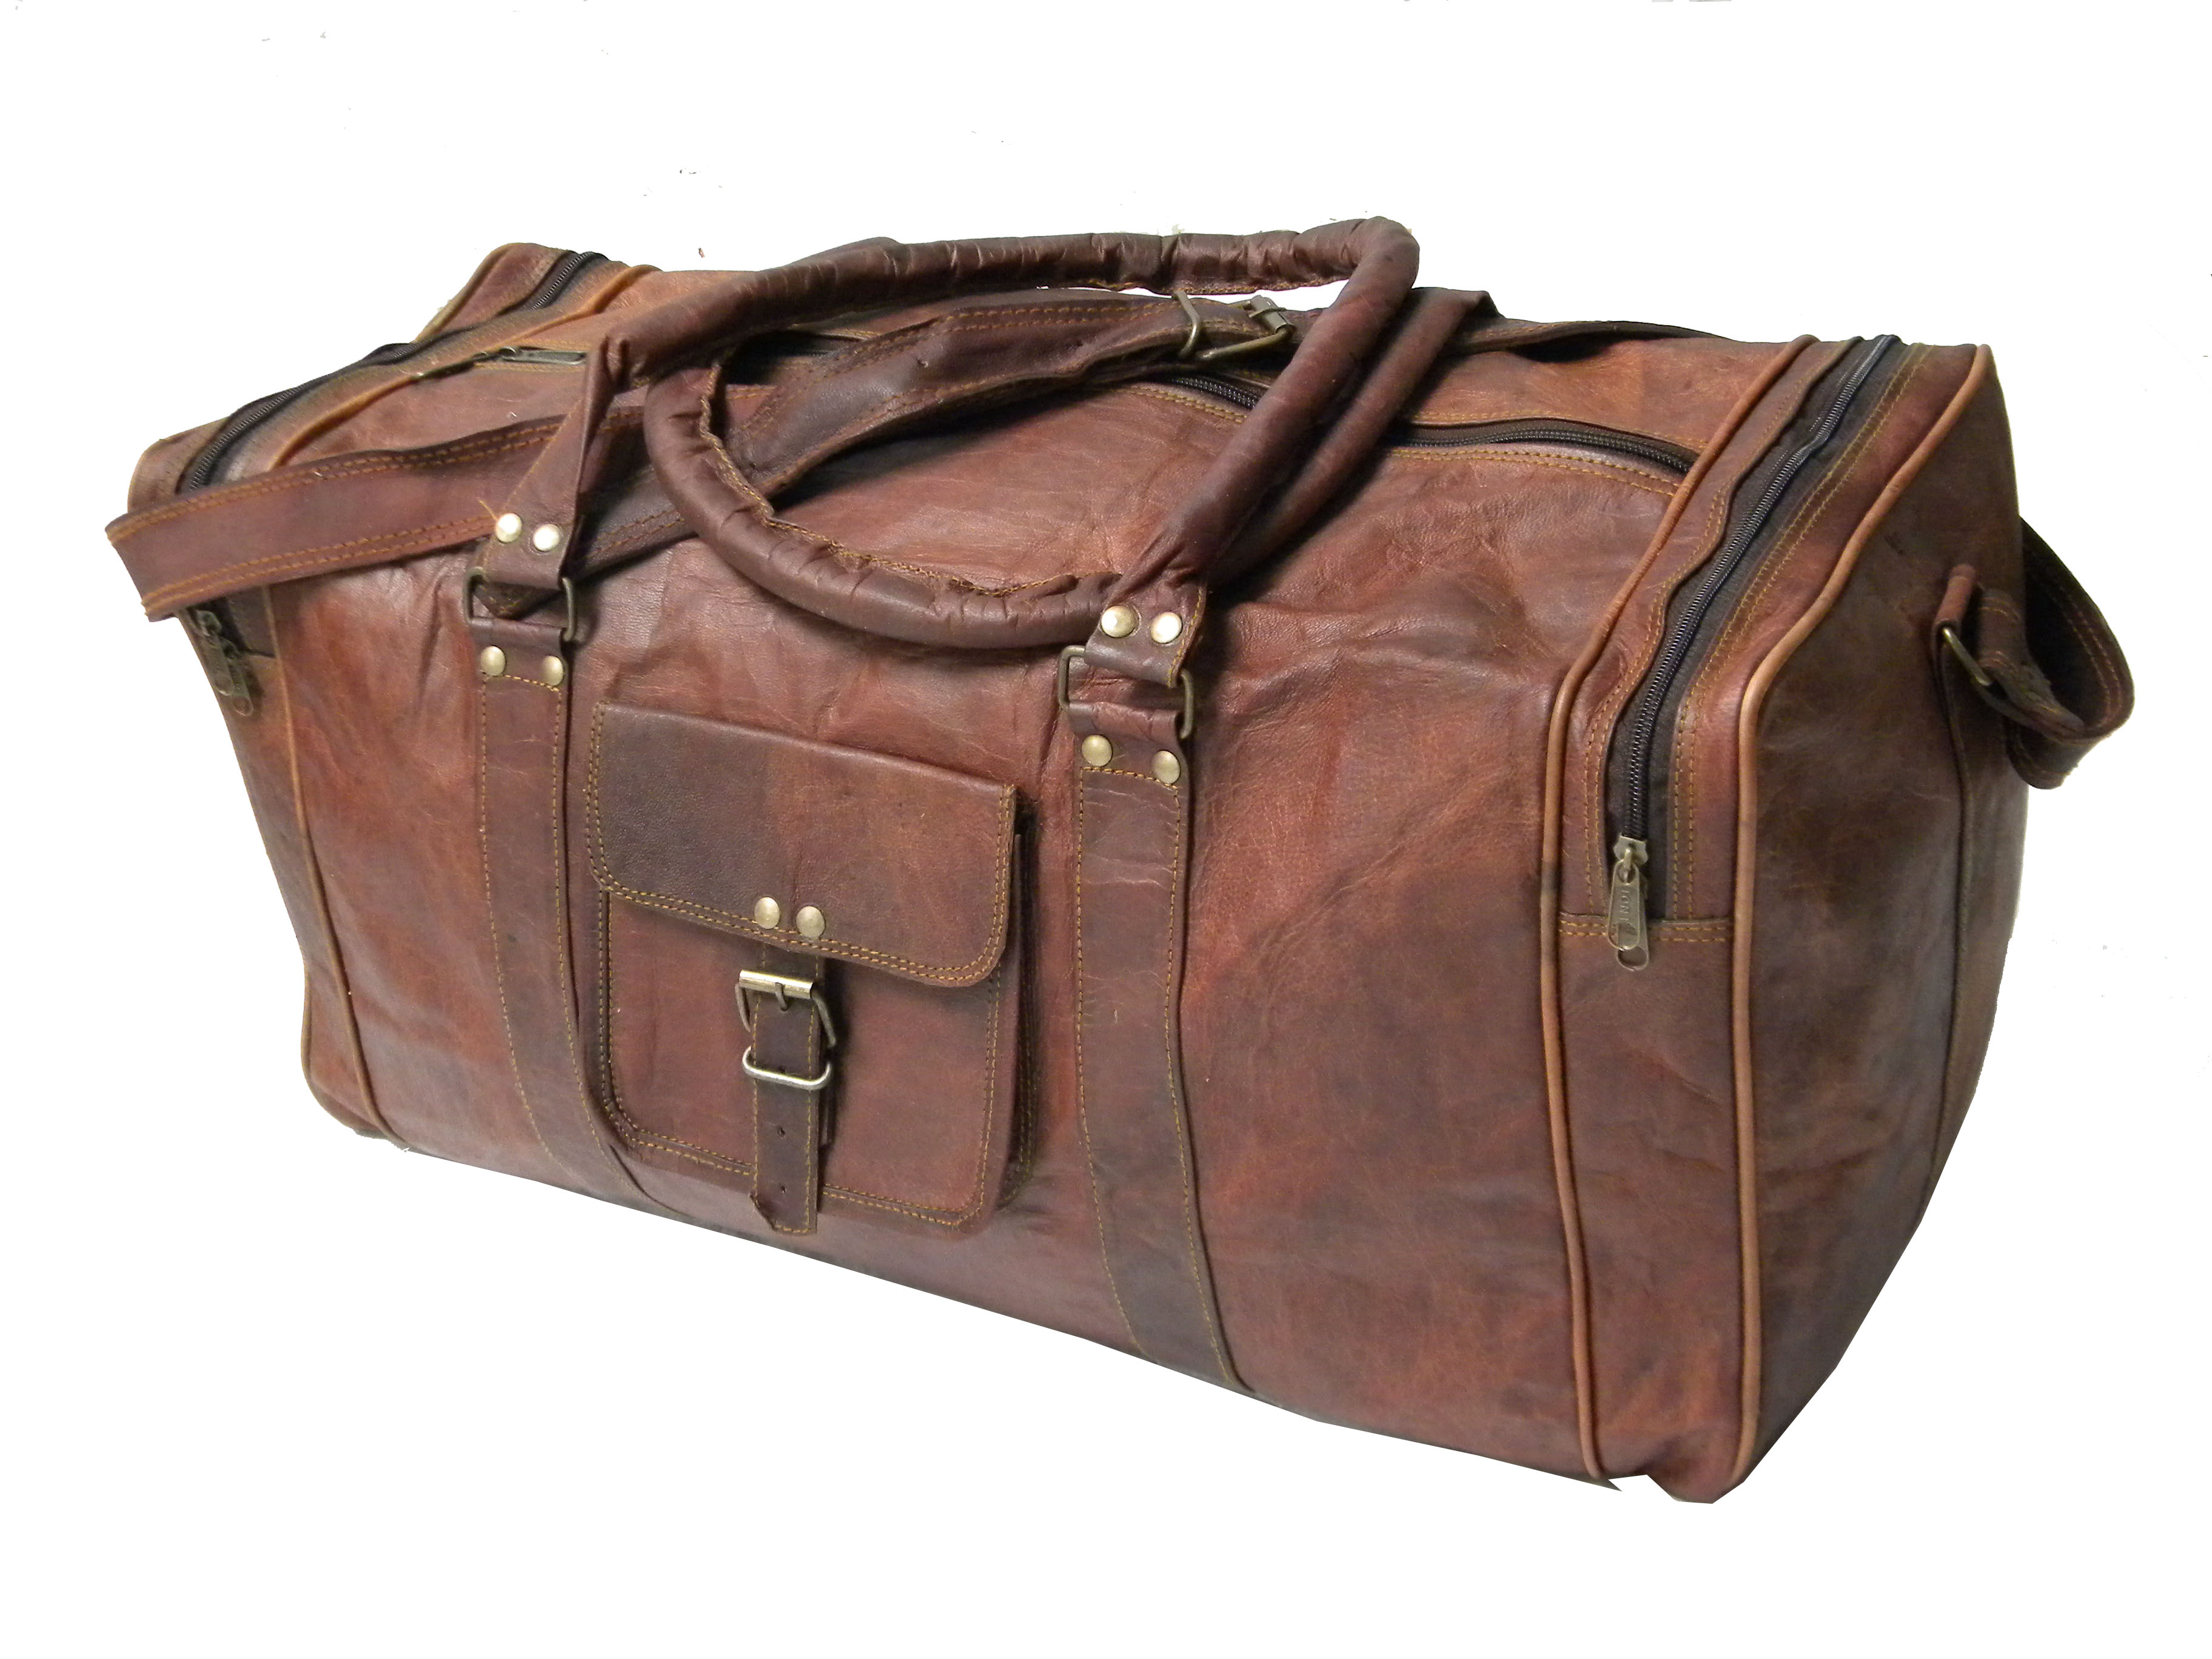 03cc31b54864 Handmade 20 Inch Brown Round Goat Leather Duffle Bag Travel Bag Leather  cabin bag Sport